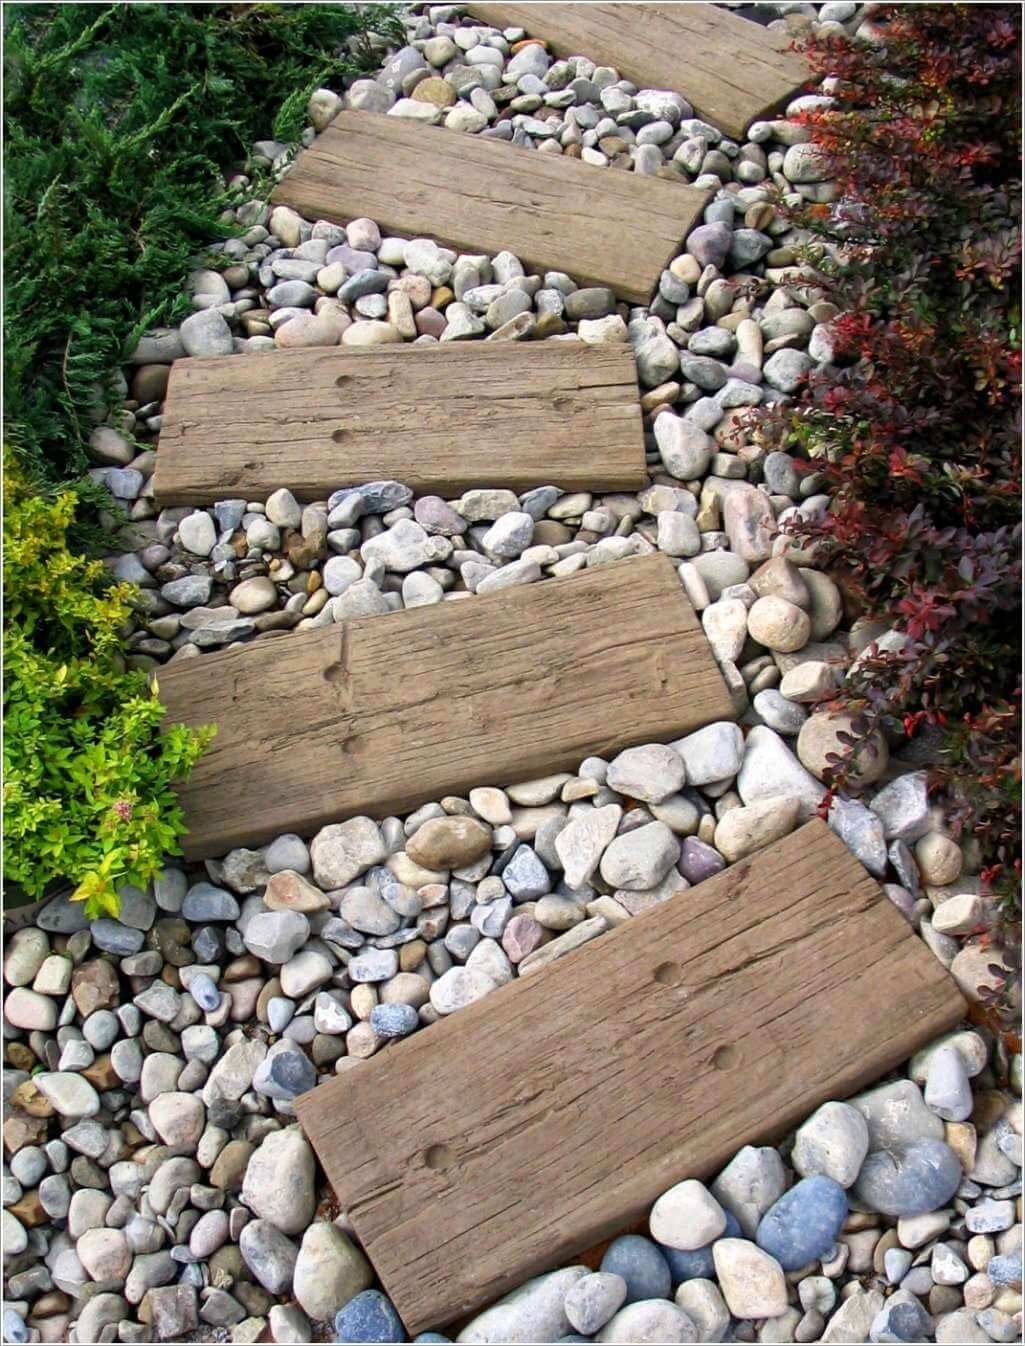 30 Best Decorative Stepping Stones (Ideas and Designs) | Stone ...